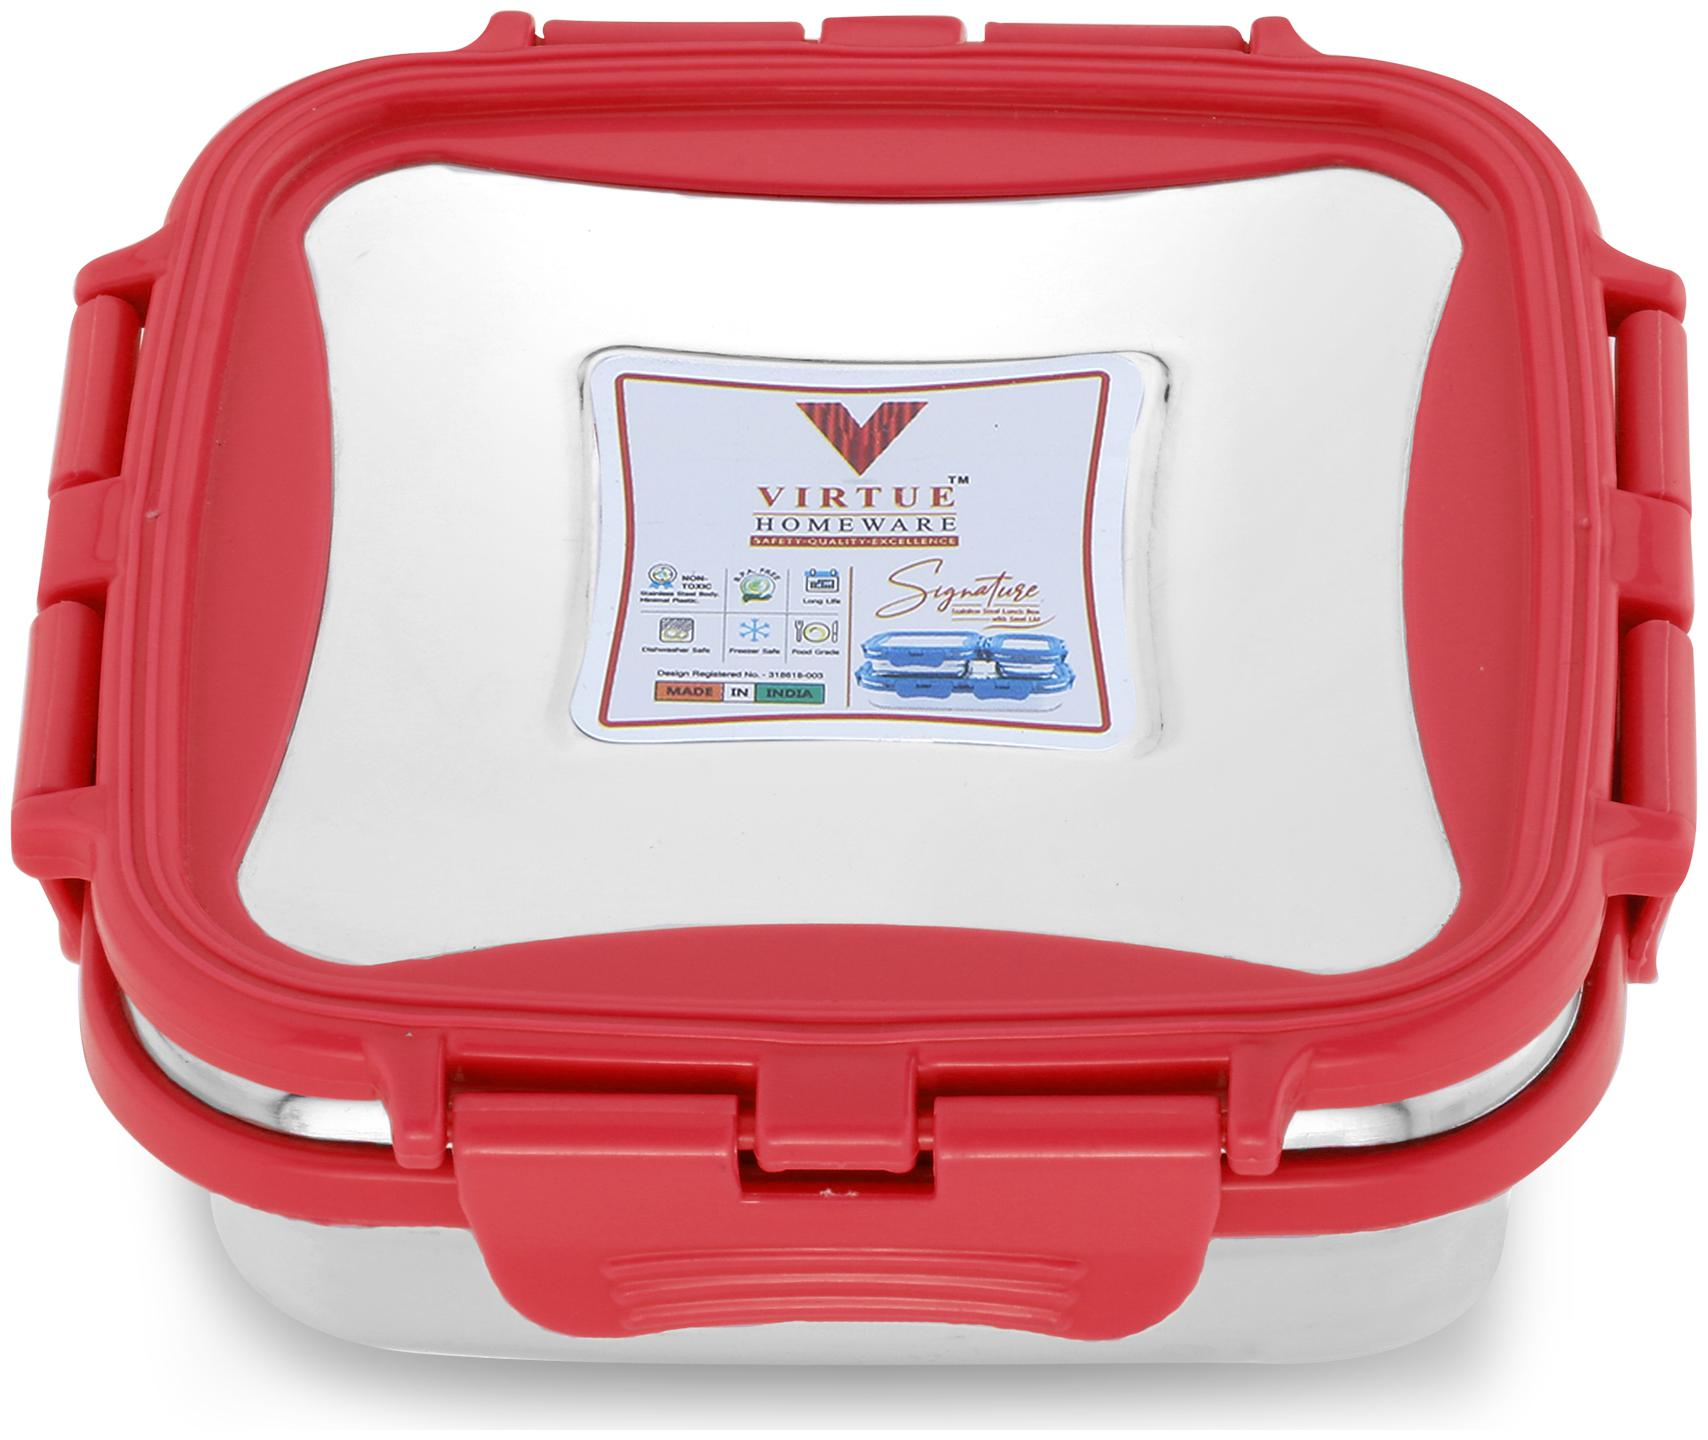 Virtue Homeware Stainless Steel Lunch Box Set  1 Red container  330ml Lunch Box